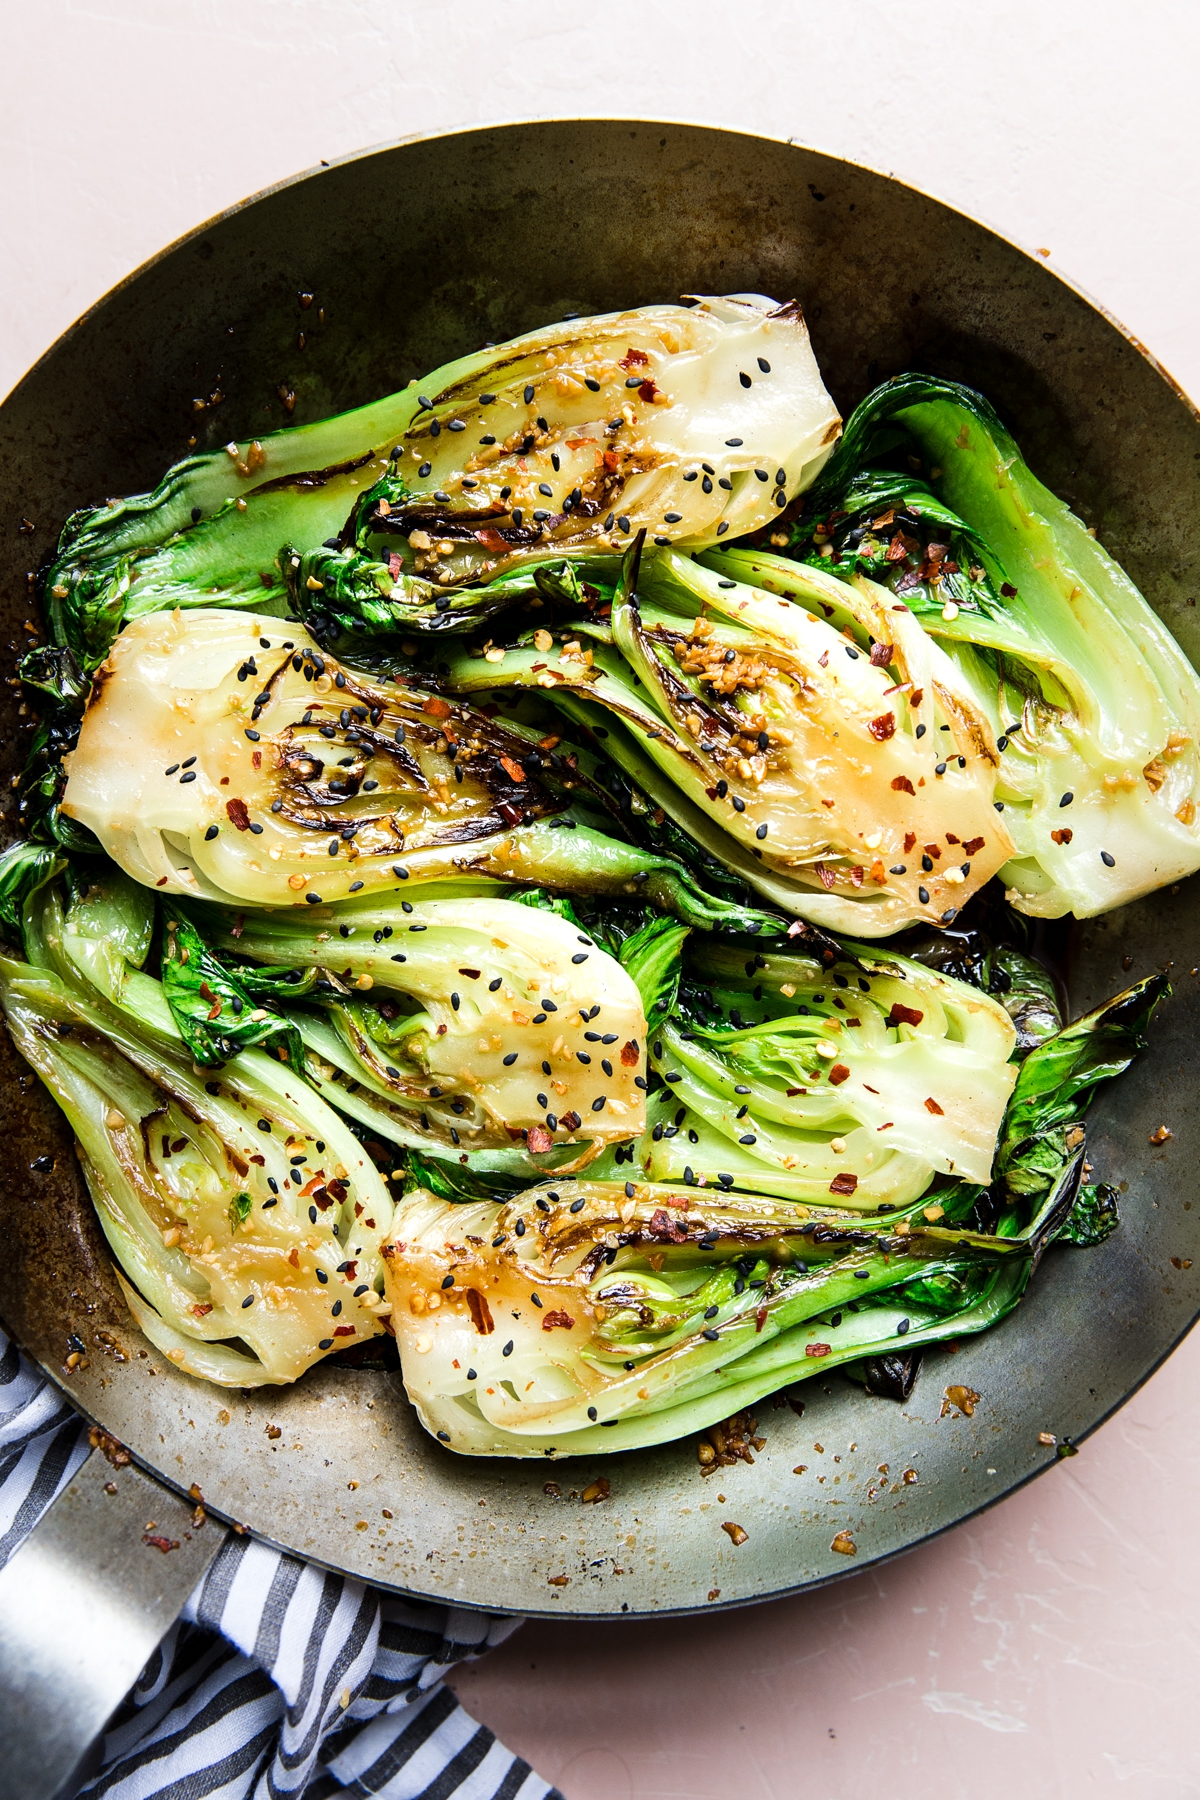 Stir-Fried-Baby-Bok-Choy-8.jpg